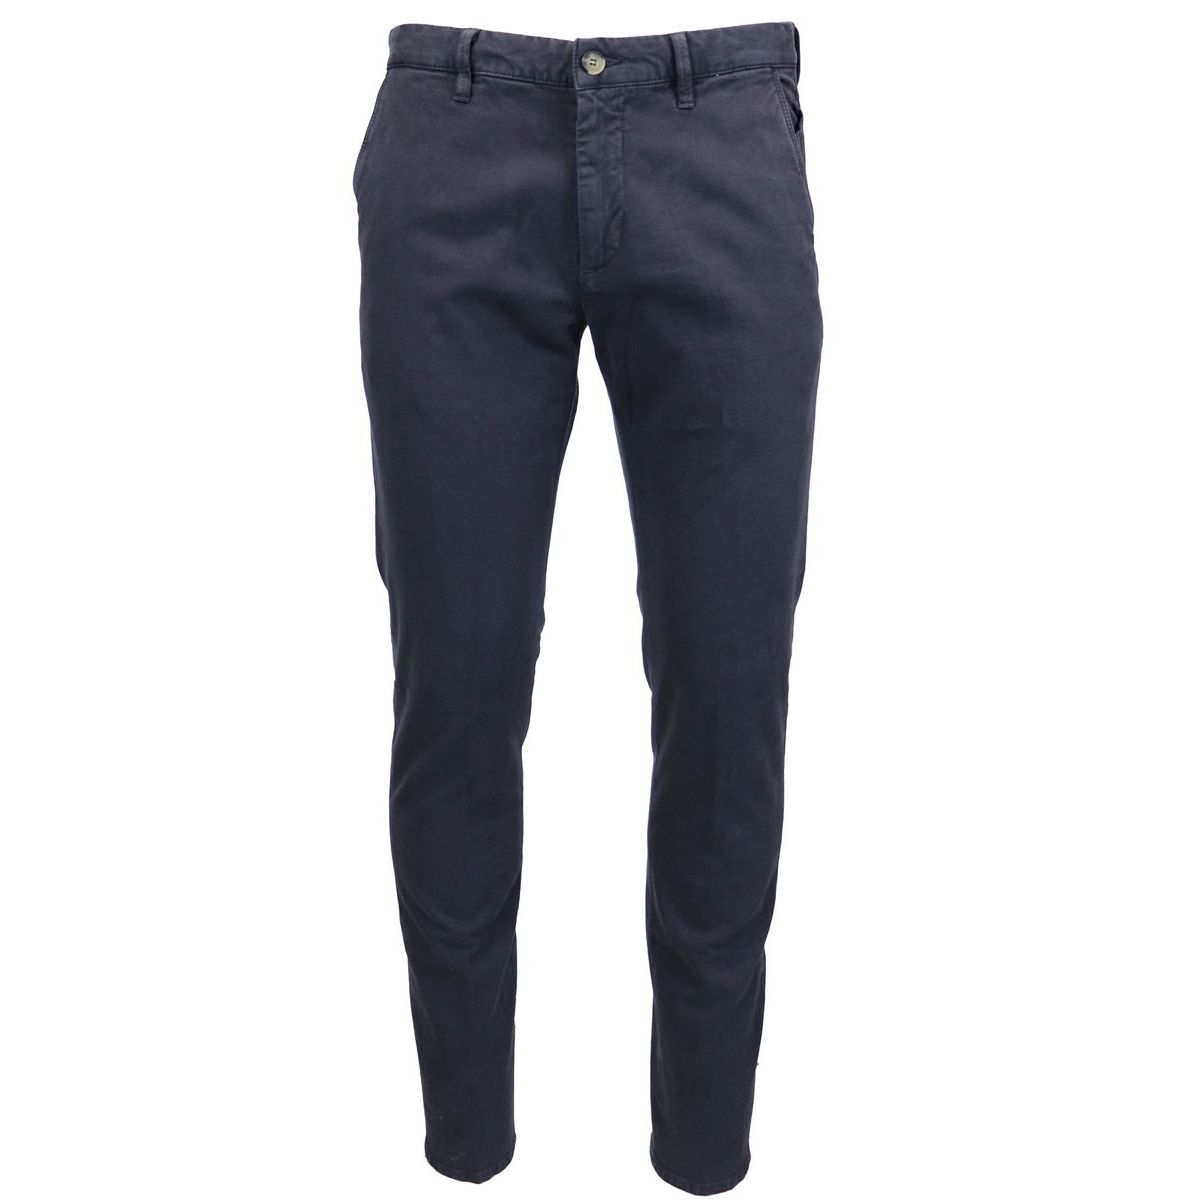 Cotton trousers with america pockets Blue Jeckerson